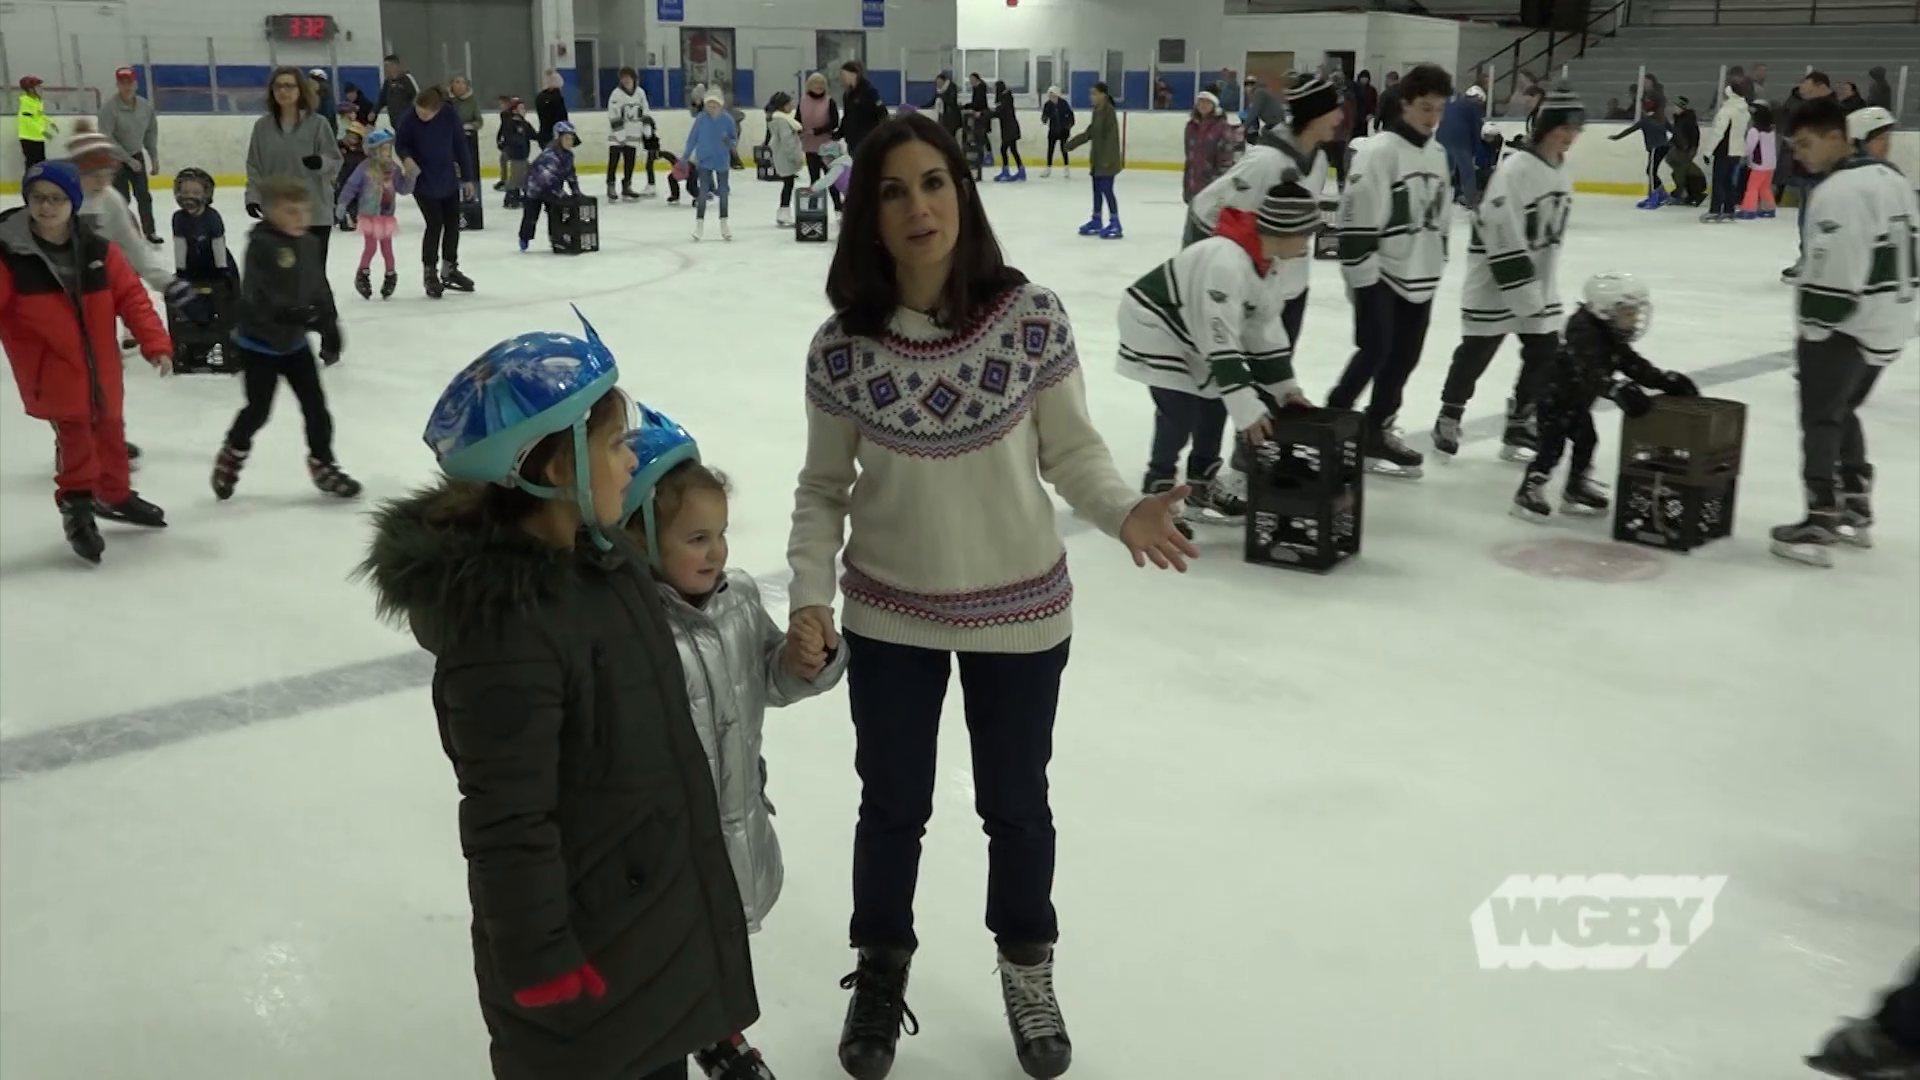 For two decades, the Springfield Police have offered kids free skating lessons as part of the Learn to Skate program at Cyr Arena in Forest Park.